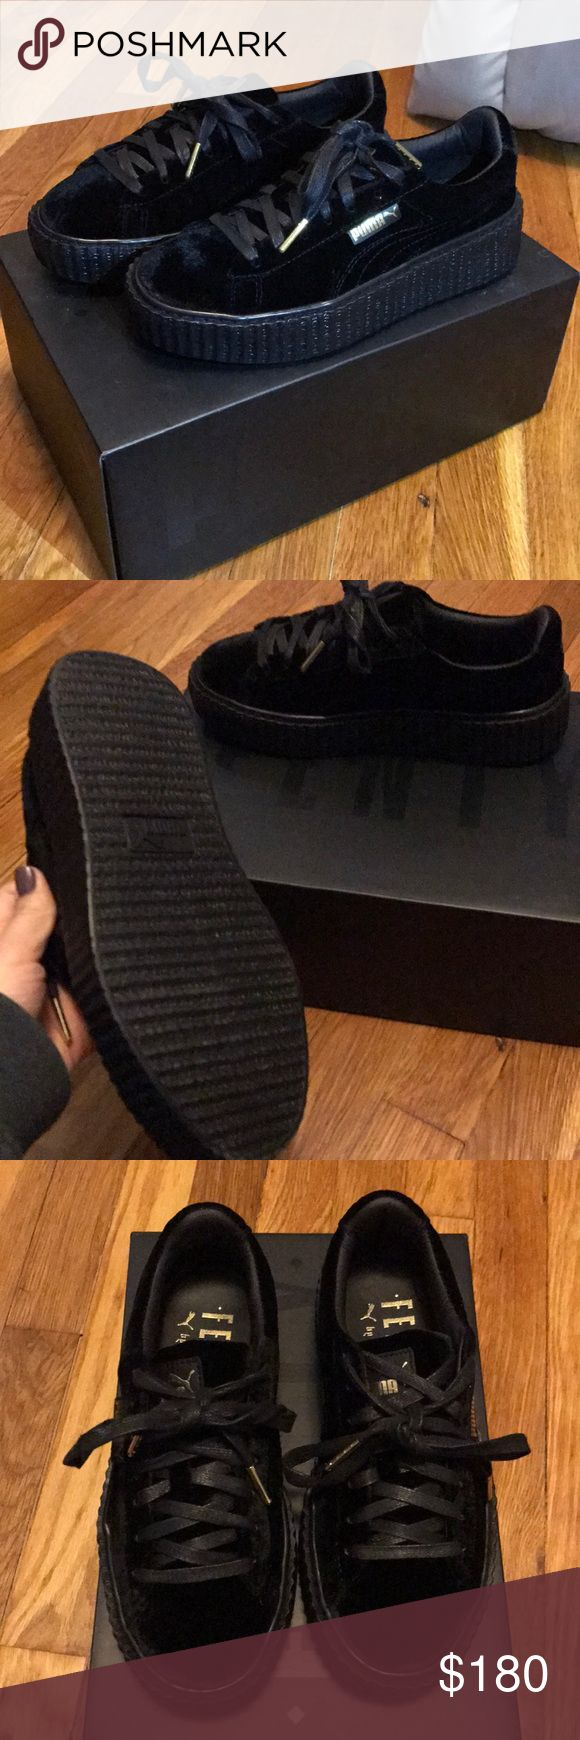 PUMA Rihanna Velvet Creeper PUMA Rihanna Velvet Creeper Sneakers. NEVER WORN PERFECT CONDITION. All black Velvet Size 6. No trades offers accepted through the offer button. 😊 Puma Shoes Sneakers